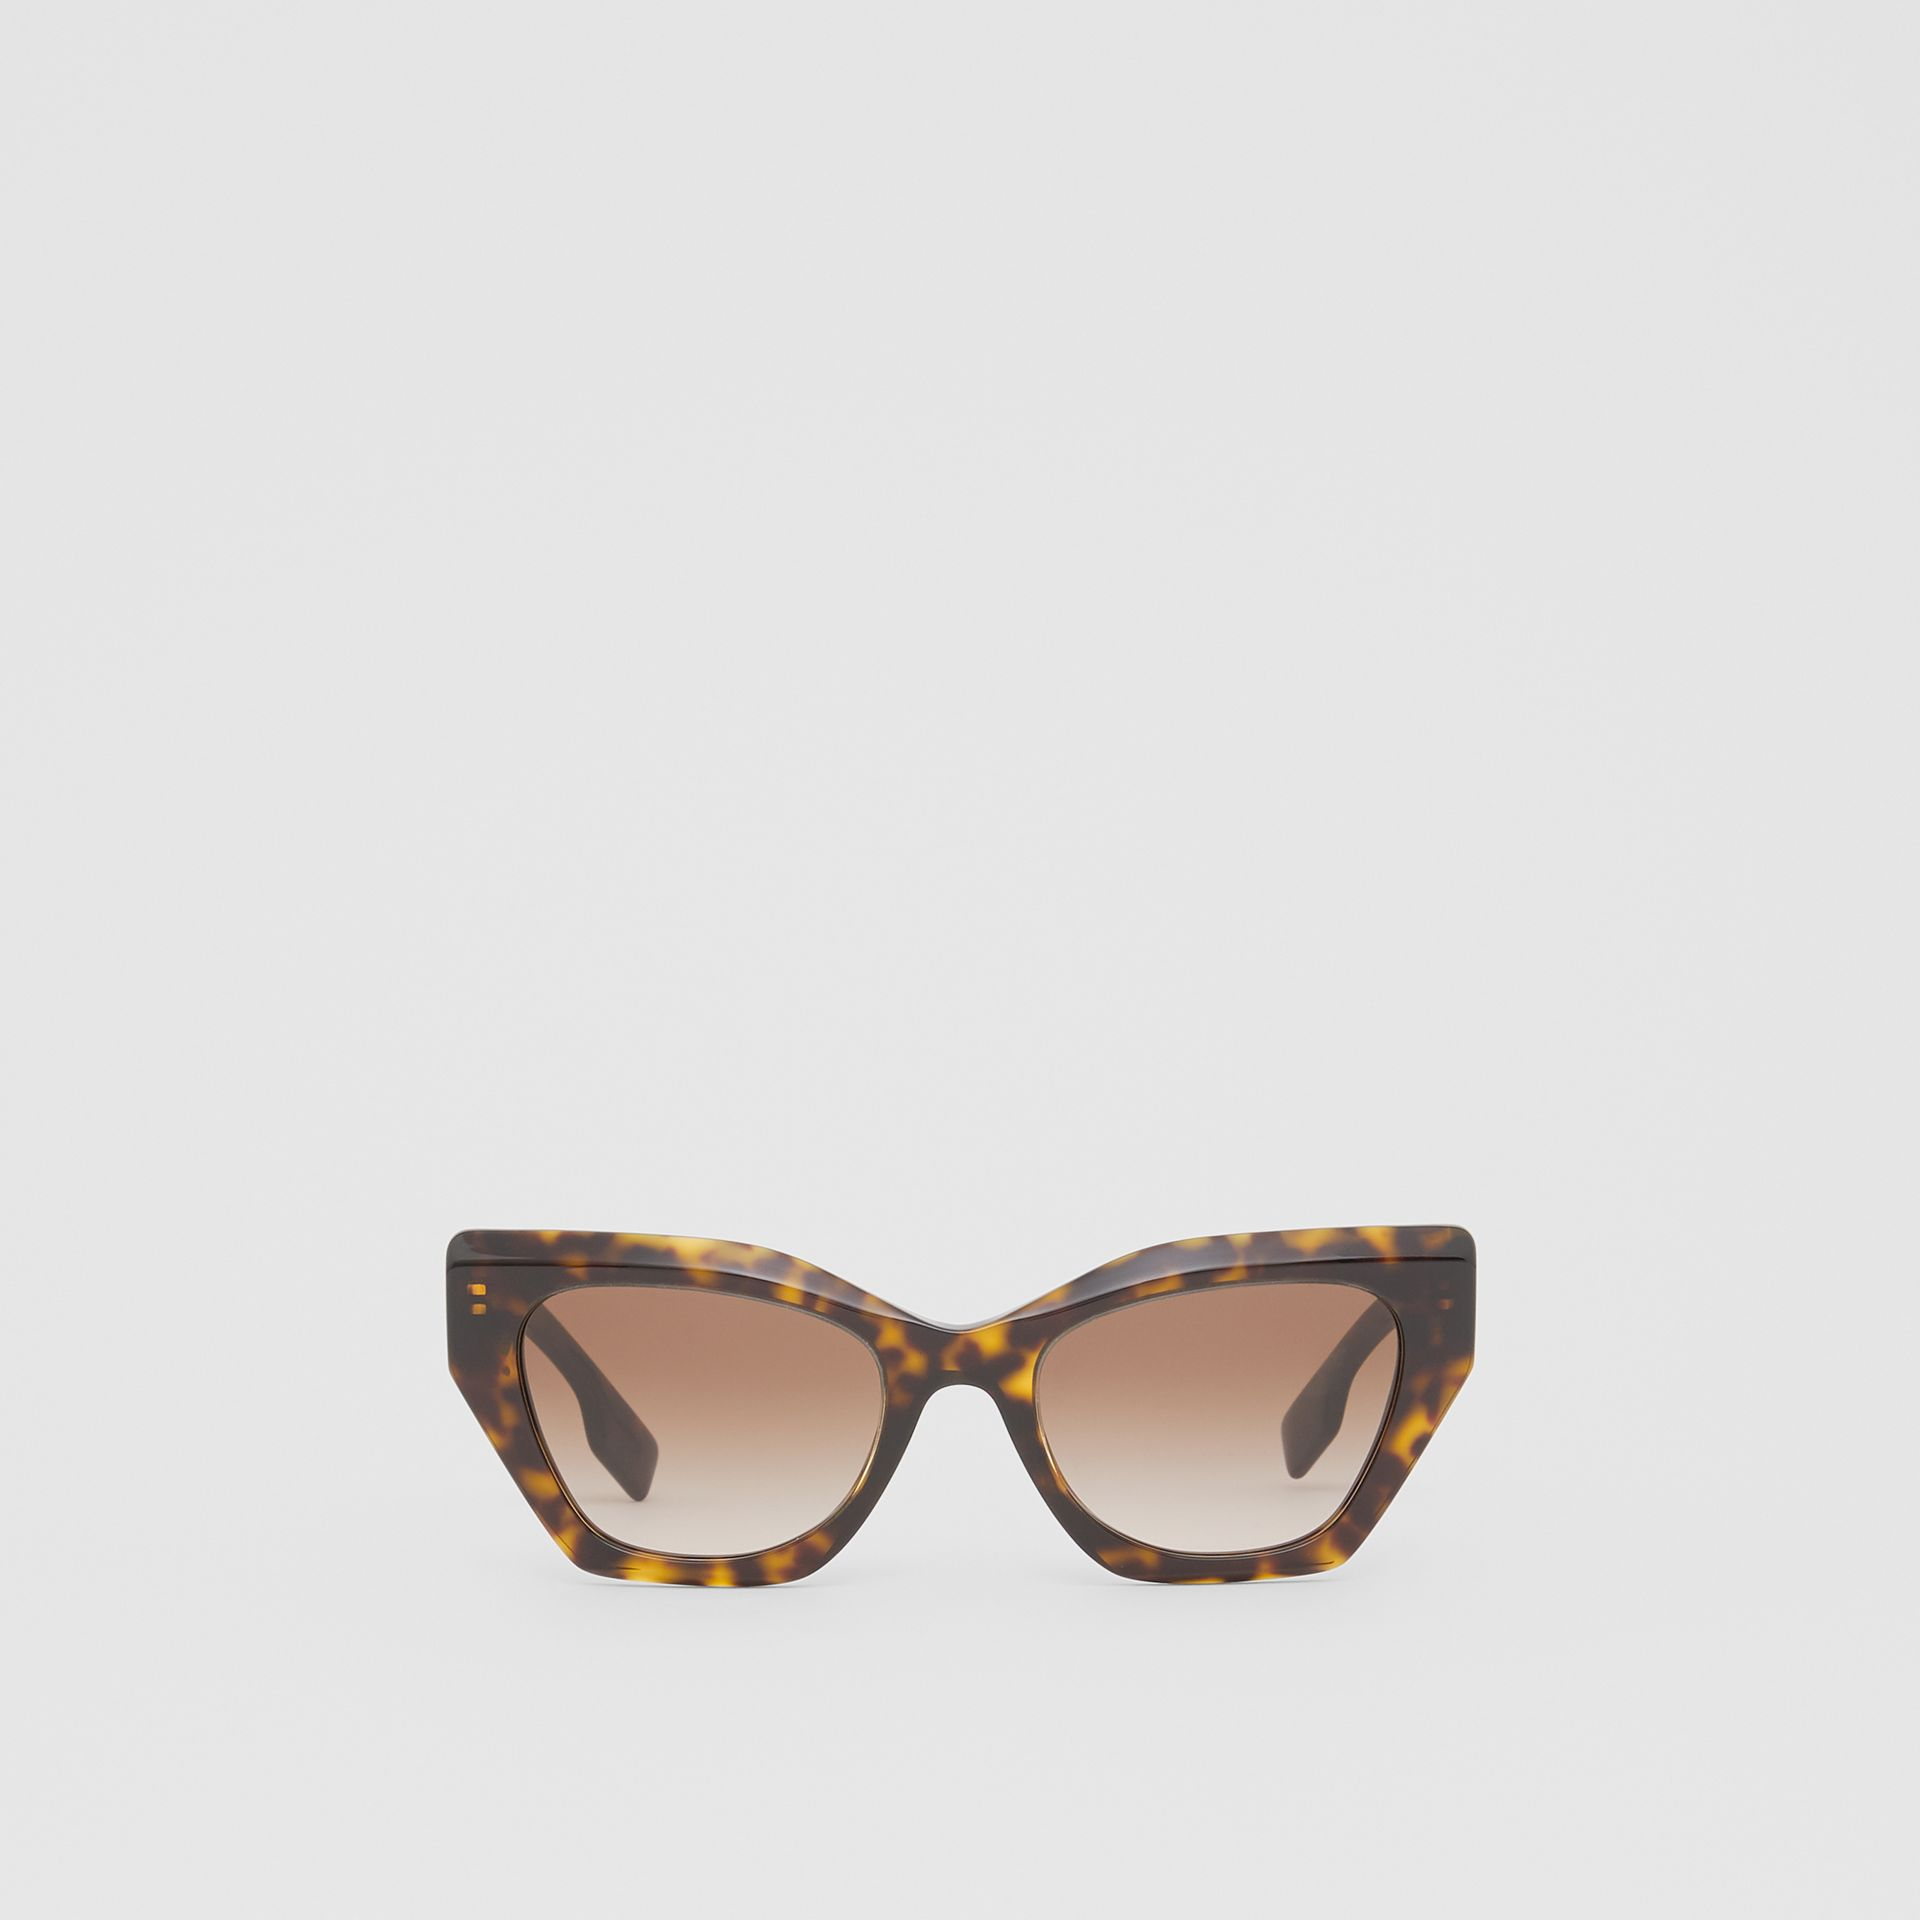 Butterfly Frame Sunglasses in Tortoiseshell - Women | Burberry Canada - gallery image 0